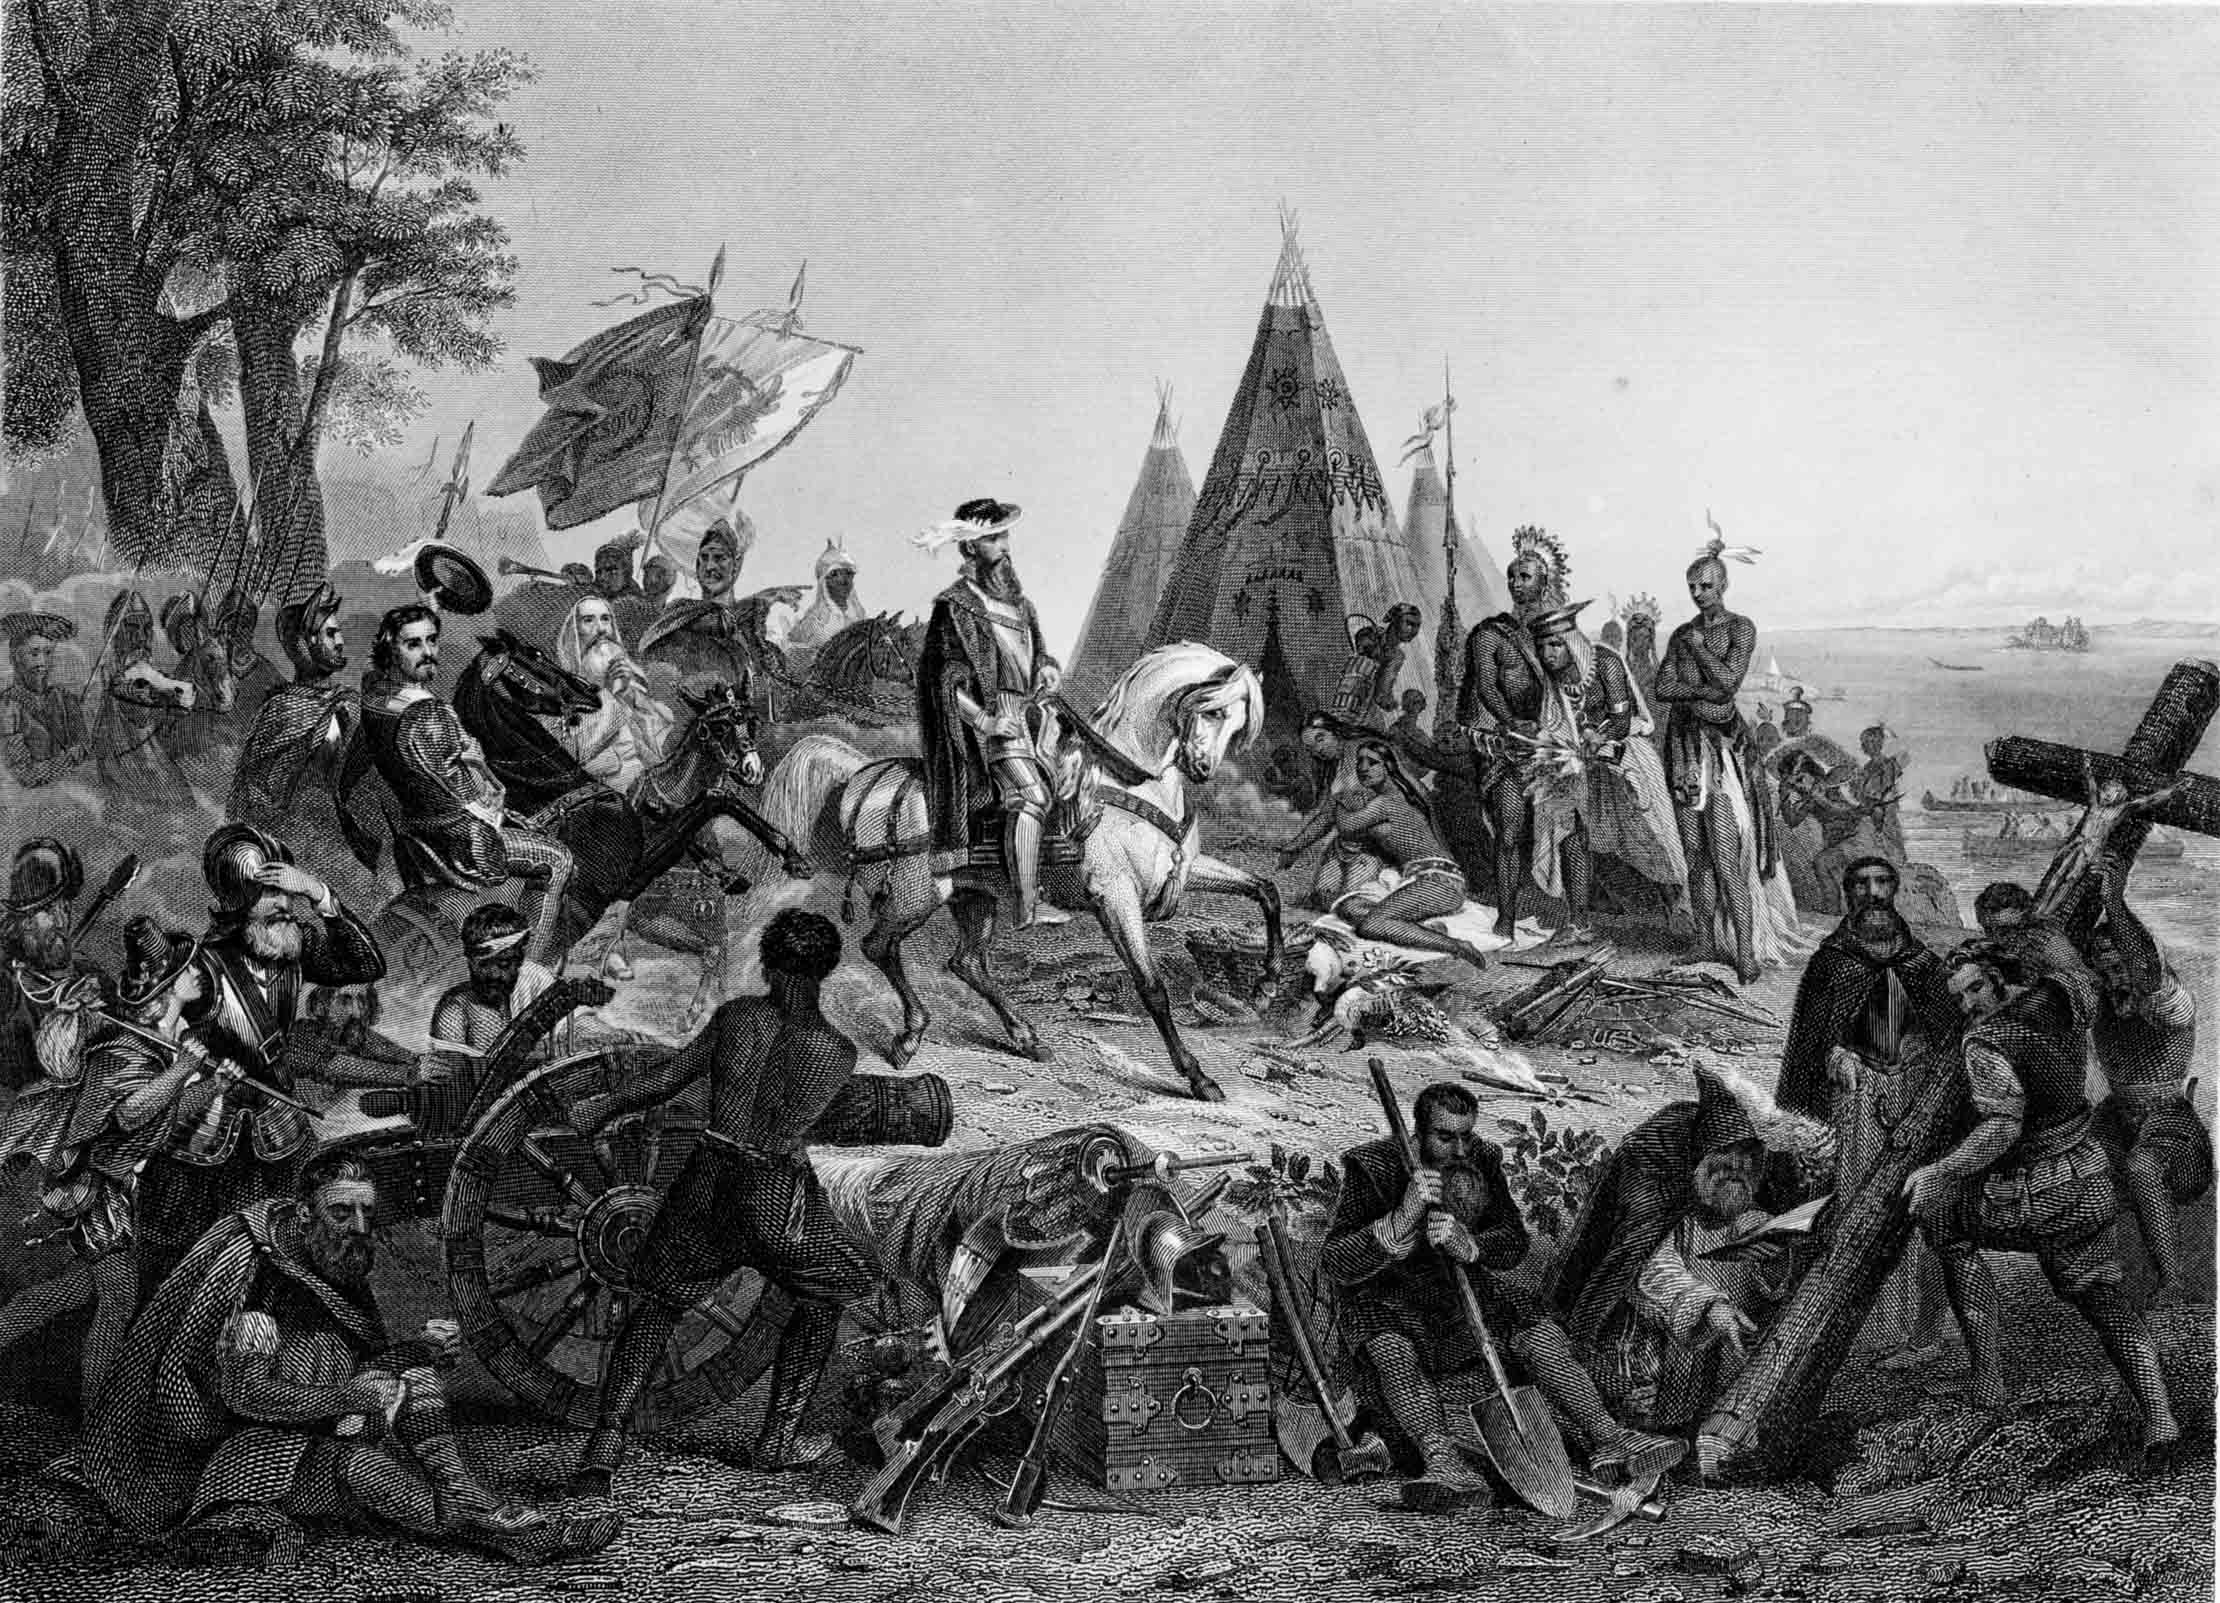 De Soto's Discovery of the Mississippi, 1858